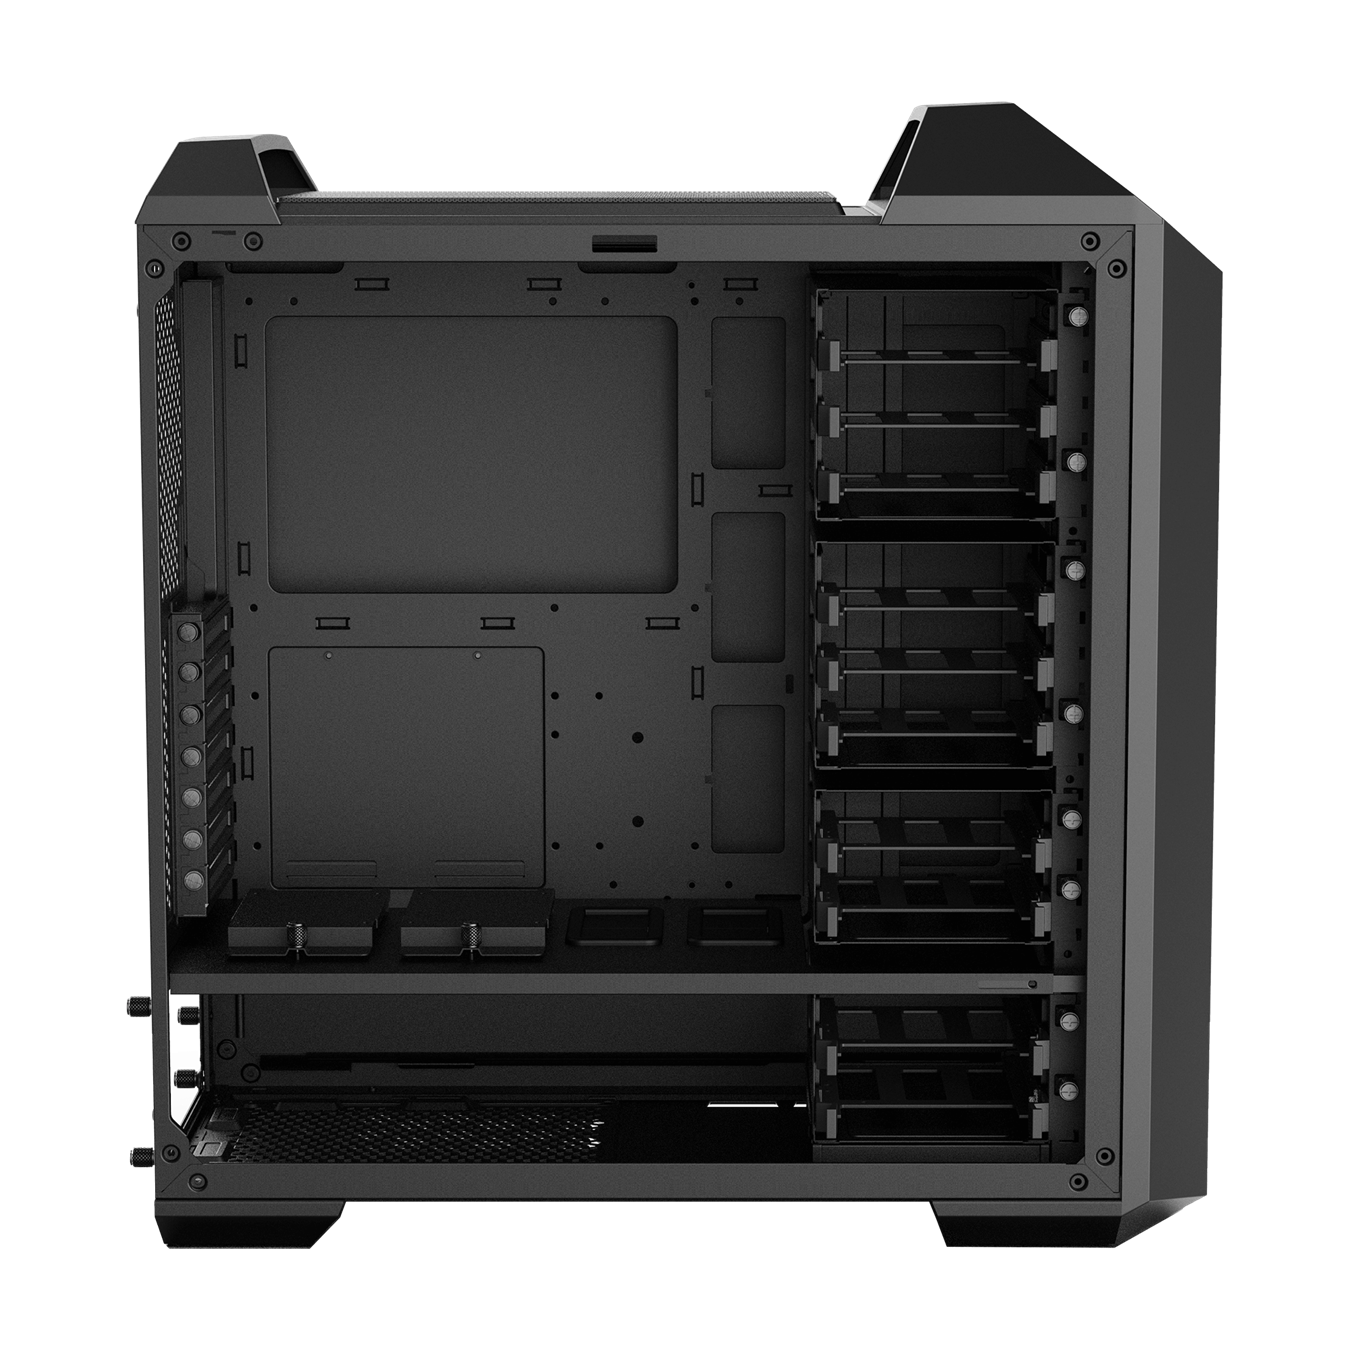 MasterCase MC500 High Storage Edition offers support for up to 6x 120mm or 6x 140mm fans andtop radiator support for up to 280mm units.